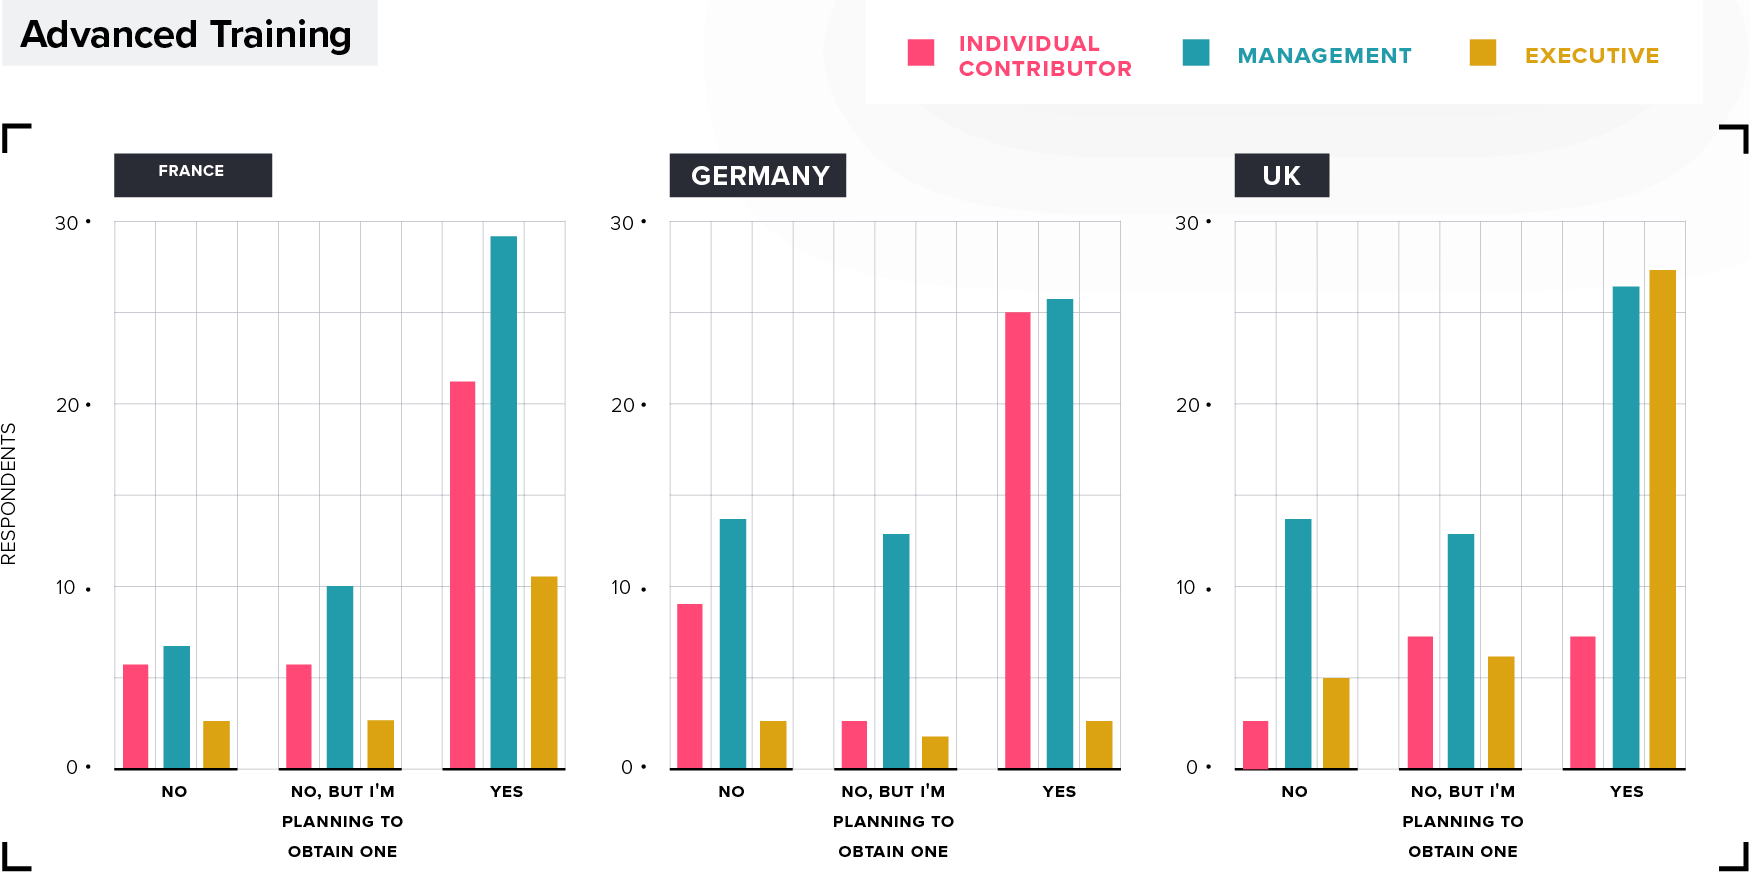 Product Management advanced training by country: France, Germany, UK